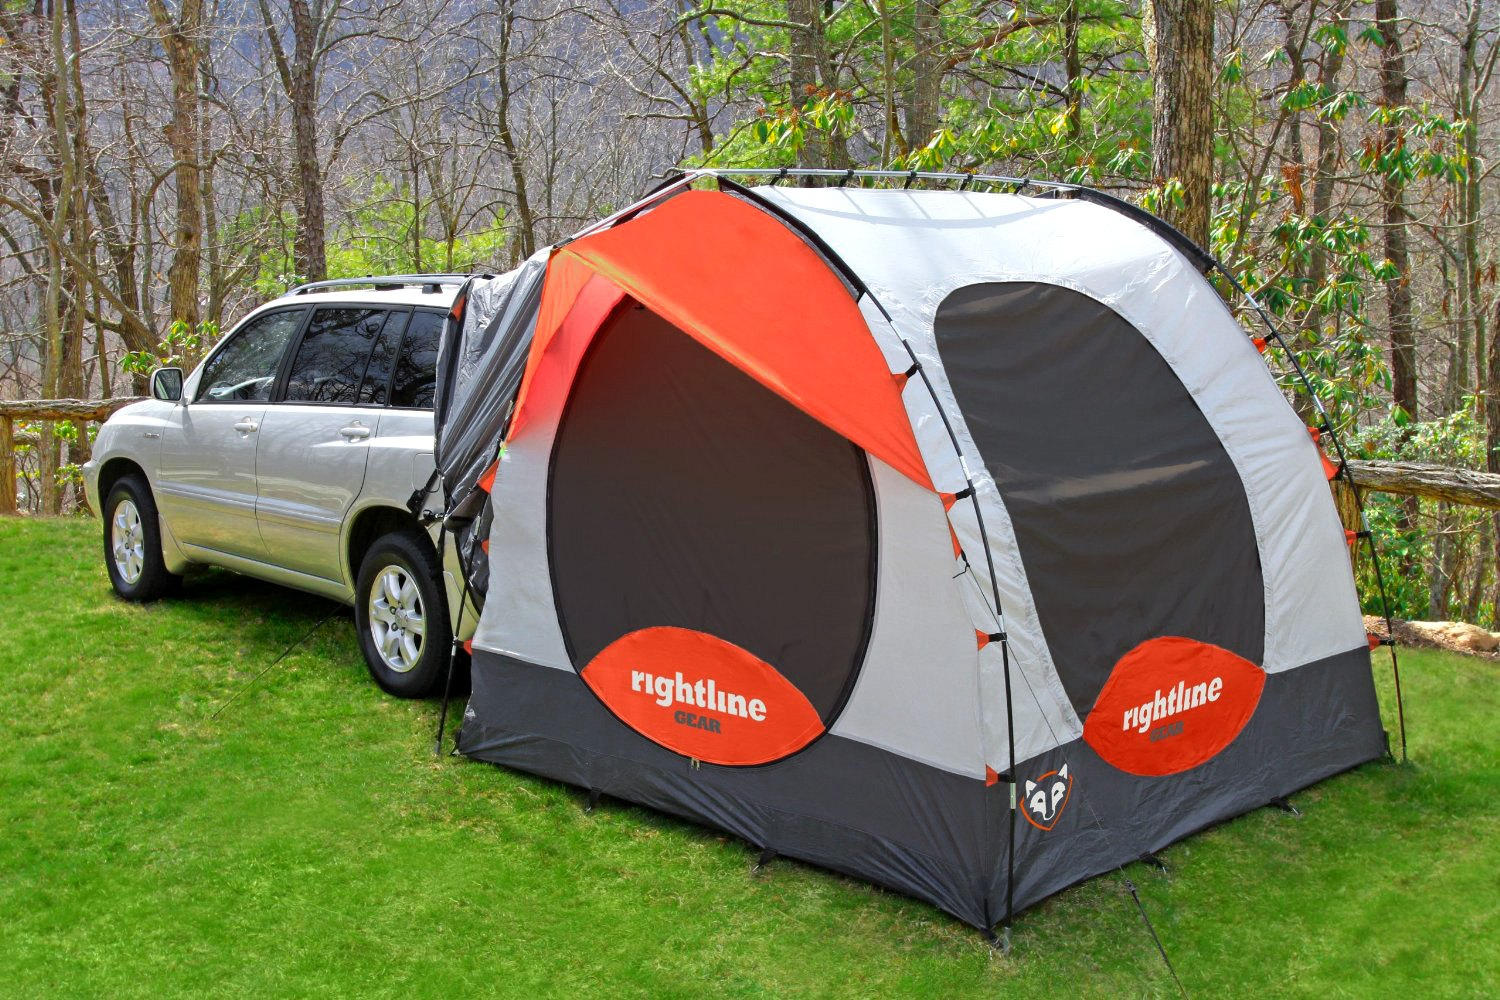 Tents That Attach To Trucks : Rightline gear™ cargo saddlebags carriers truck tents